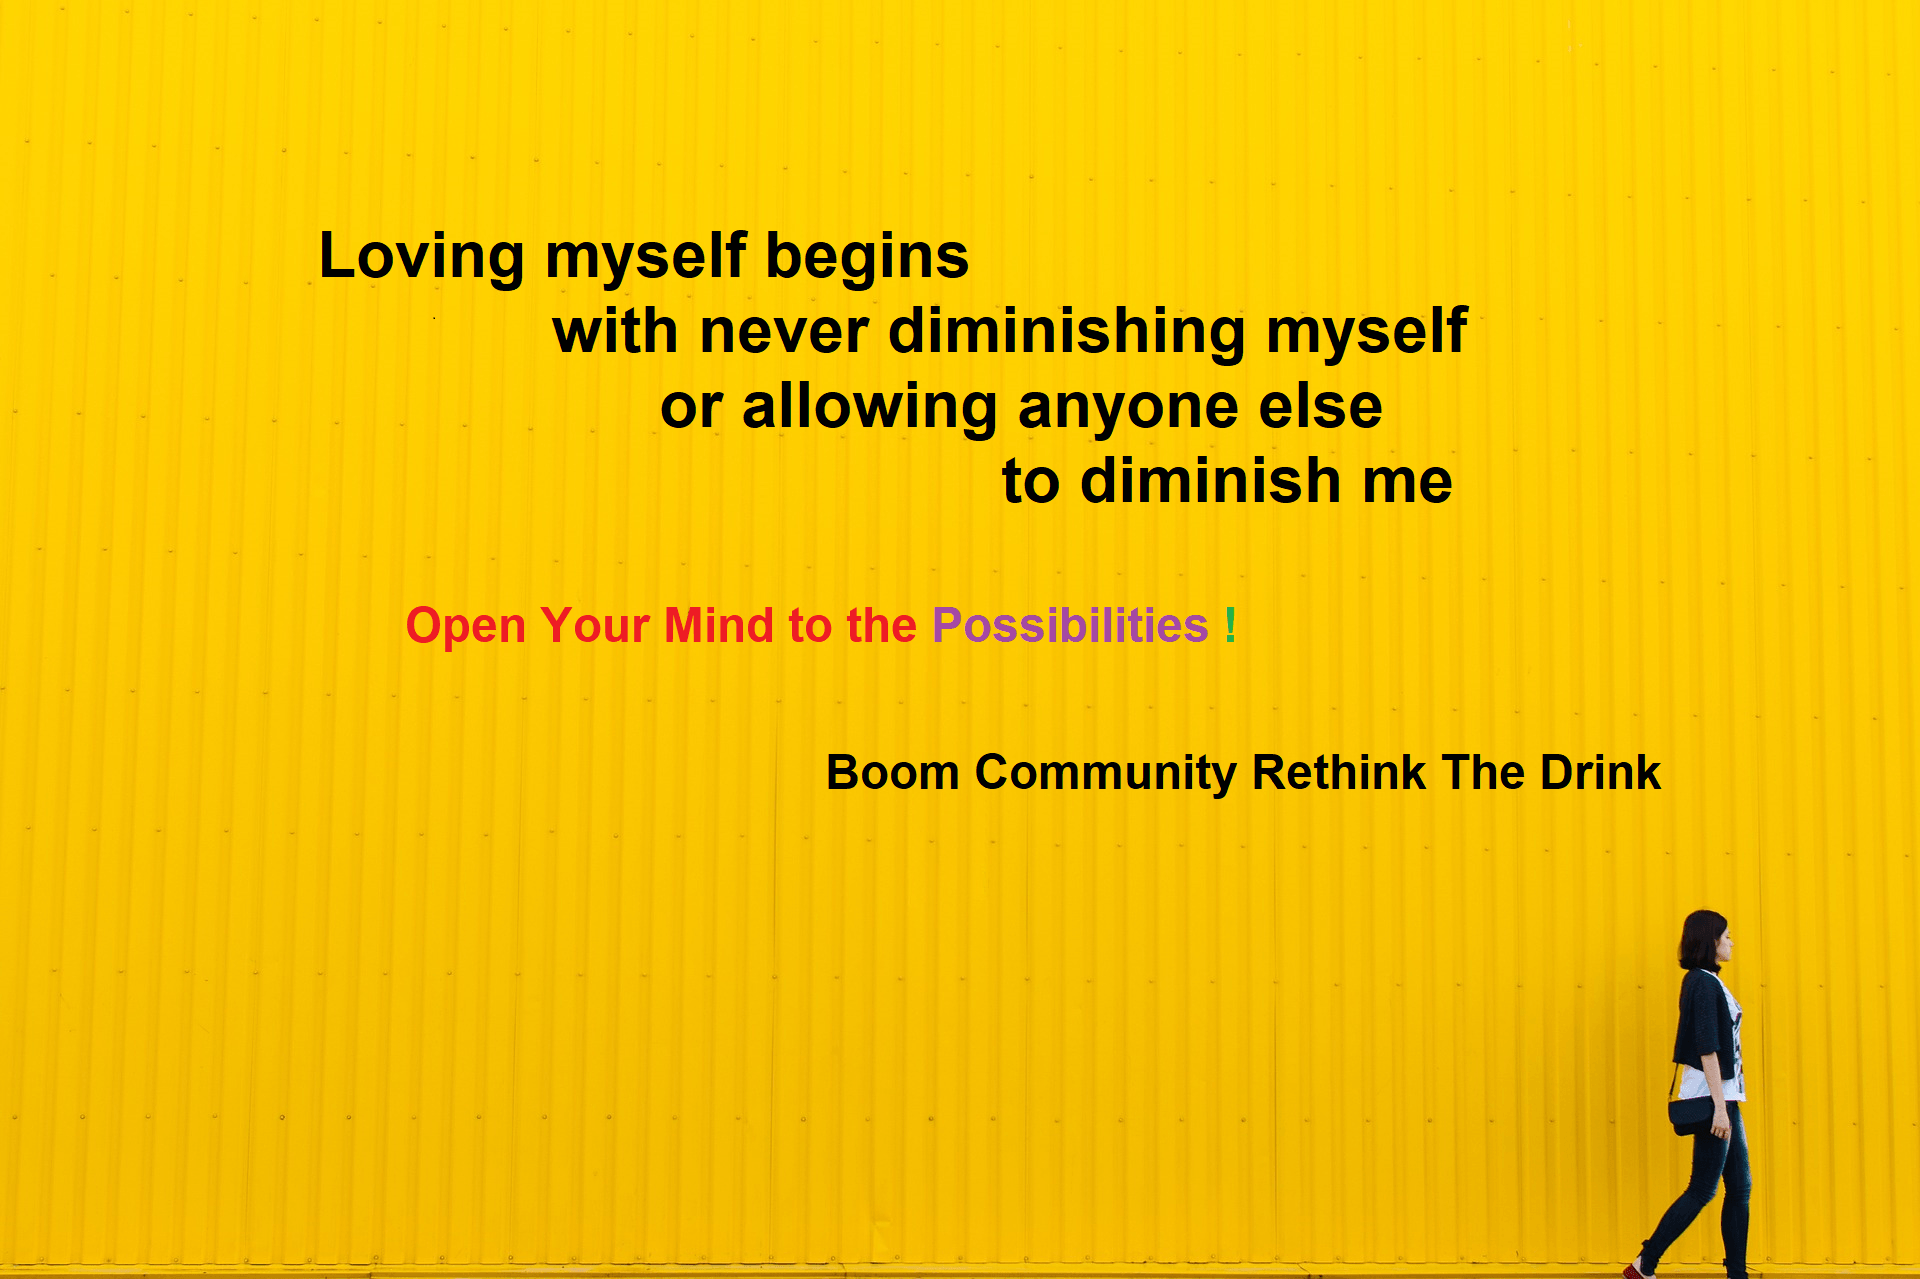 Invitation to join the alcohol help BOOM community